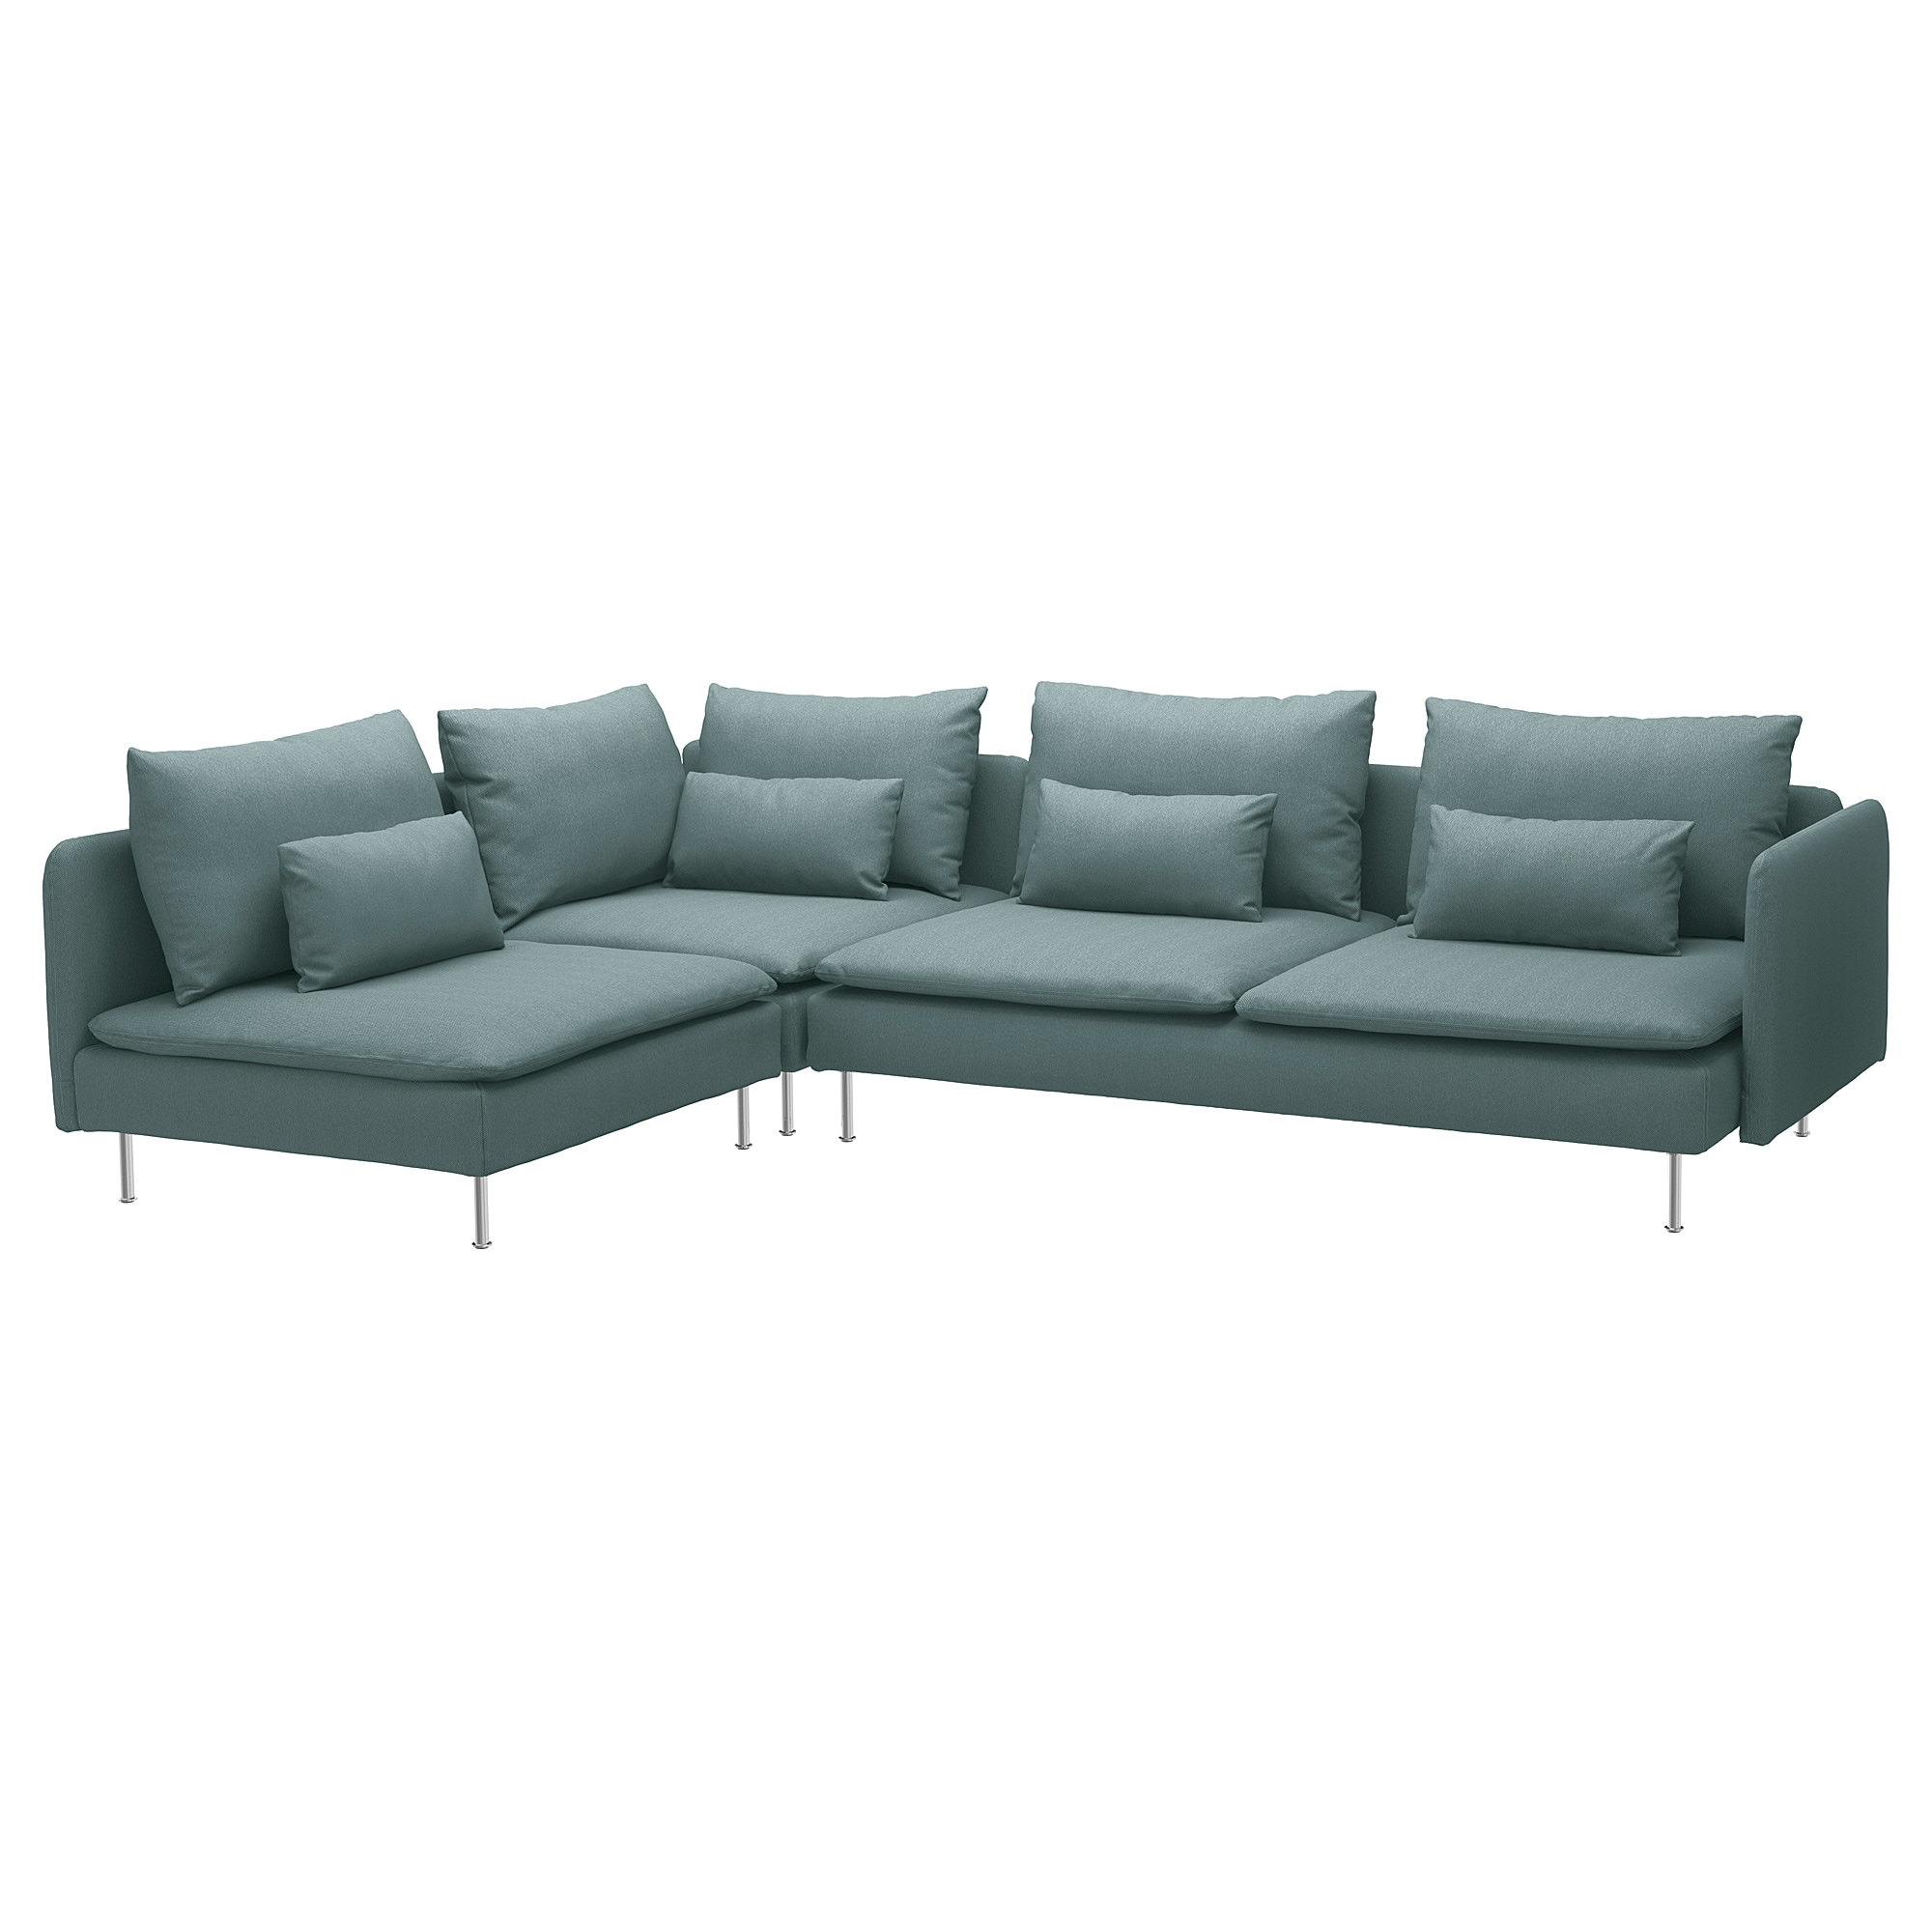 Sectional, 4-seat corner SÖDERHAMN with open end, Finnsta turquoise